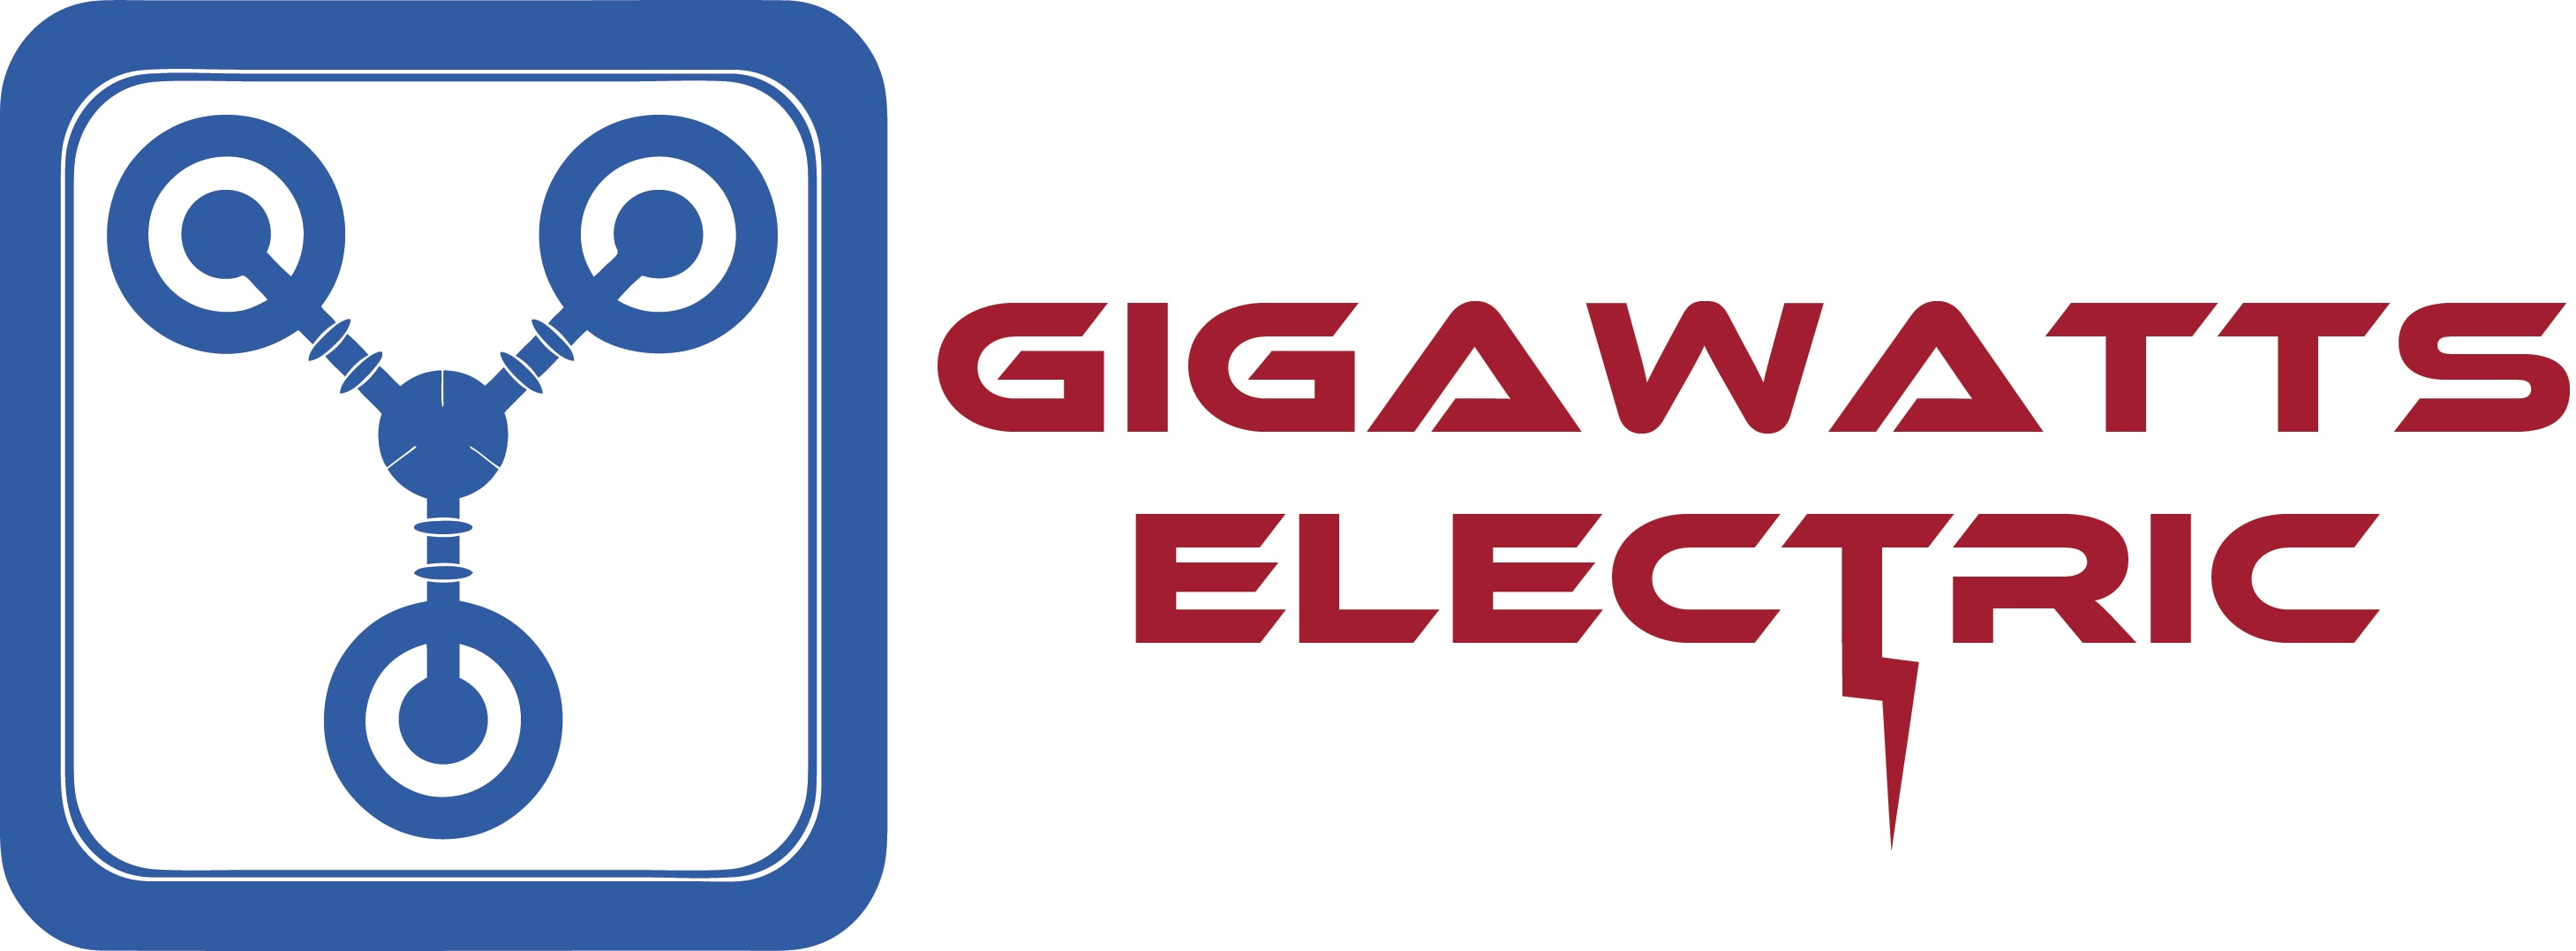 Gigawatts Electric LLC logo